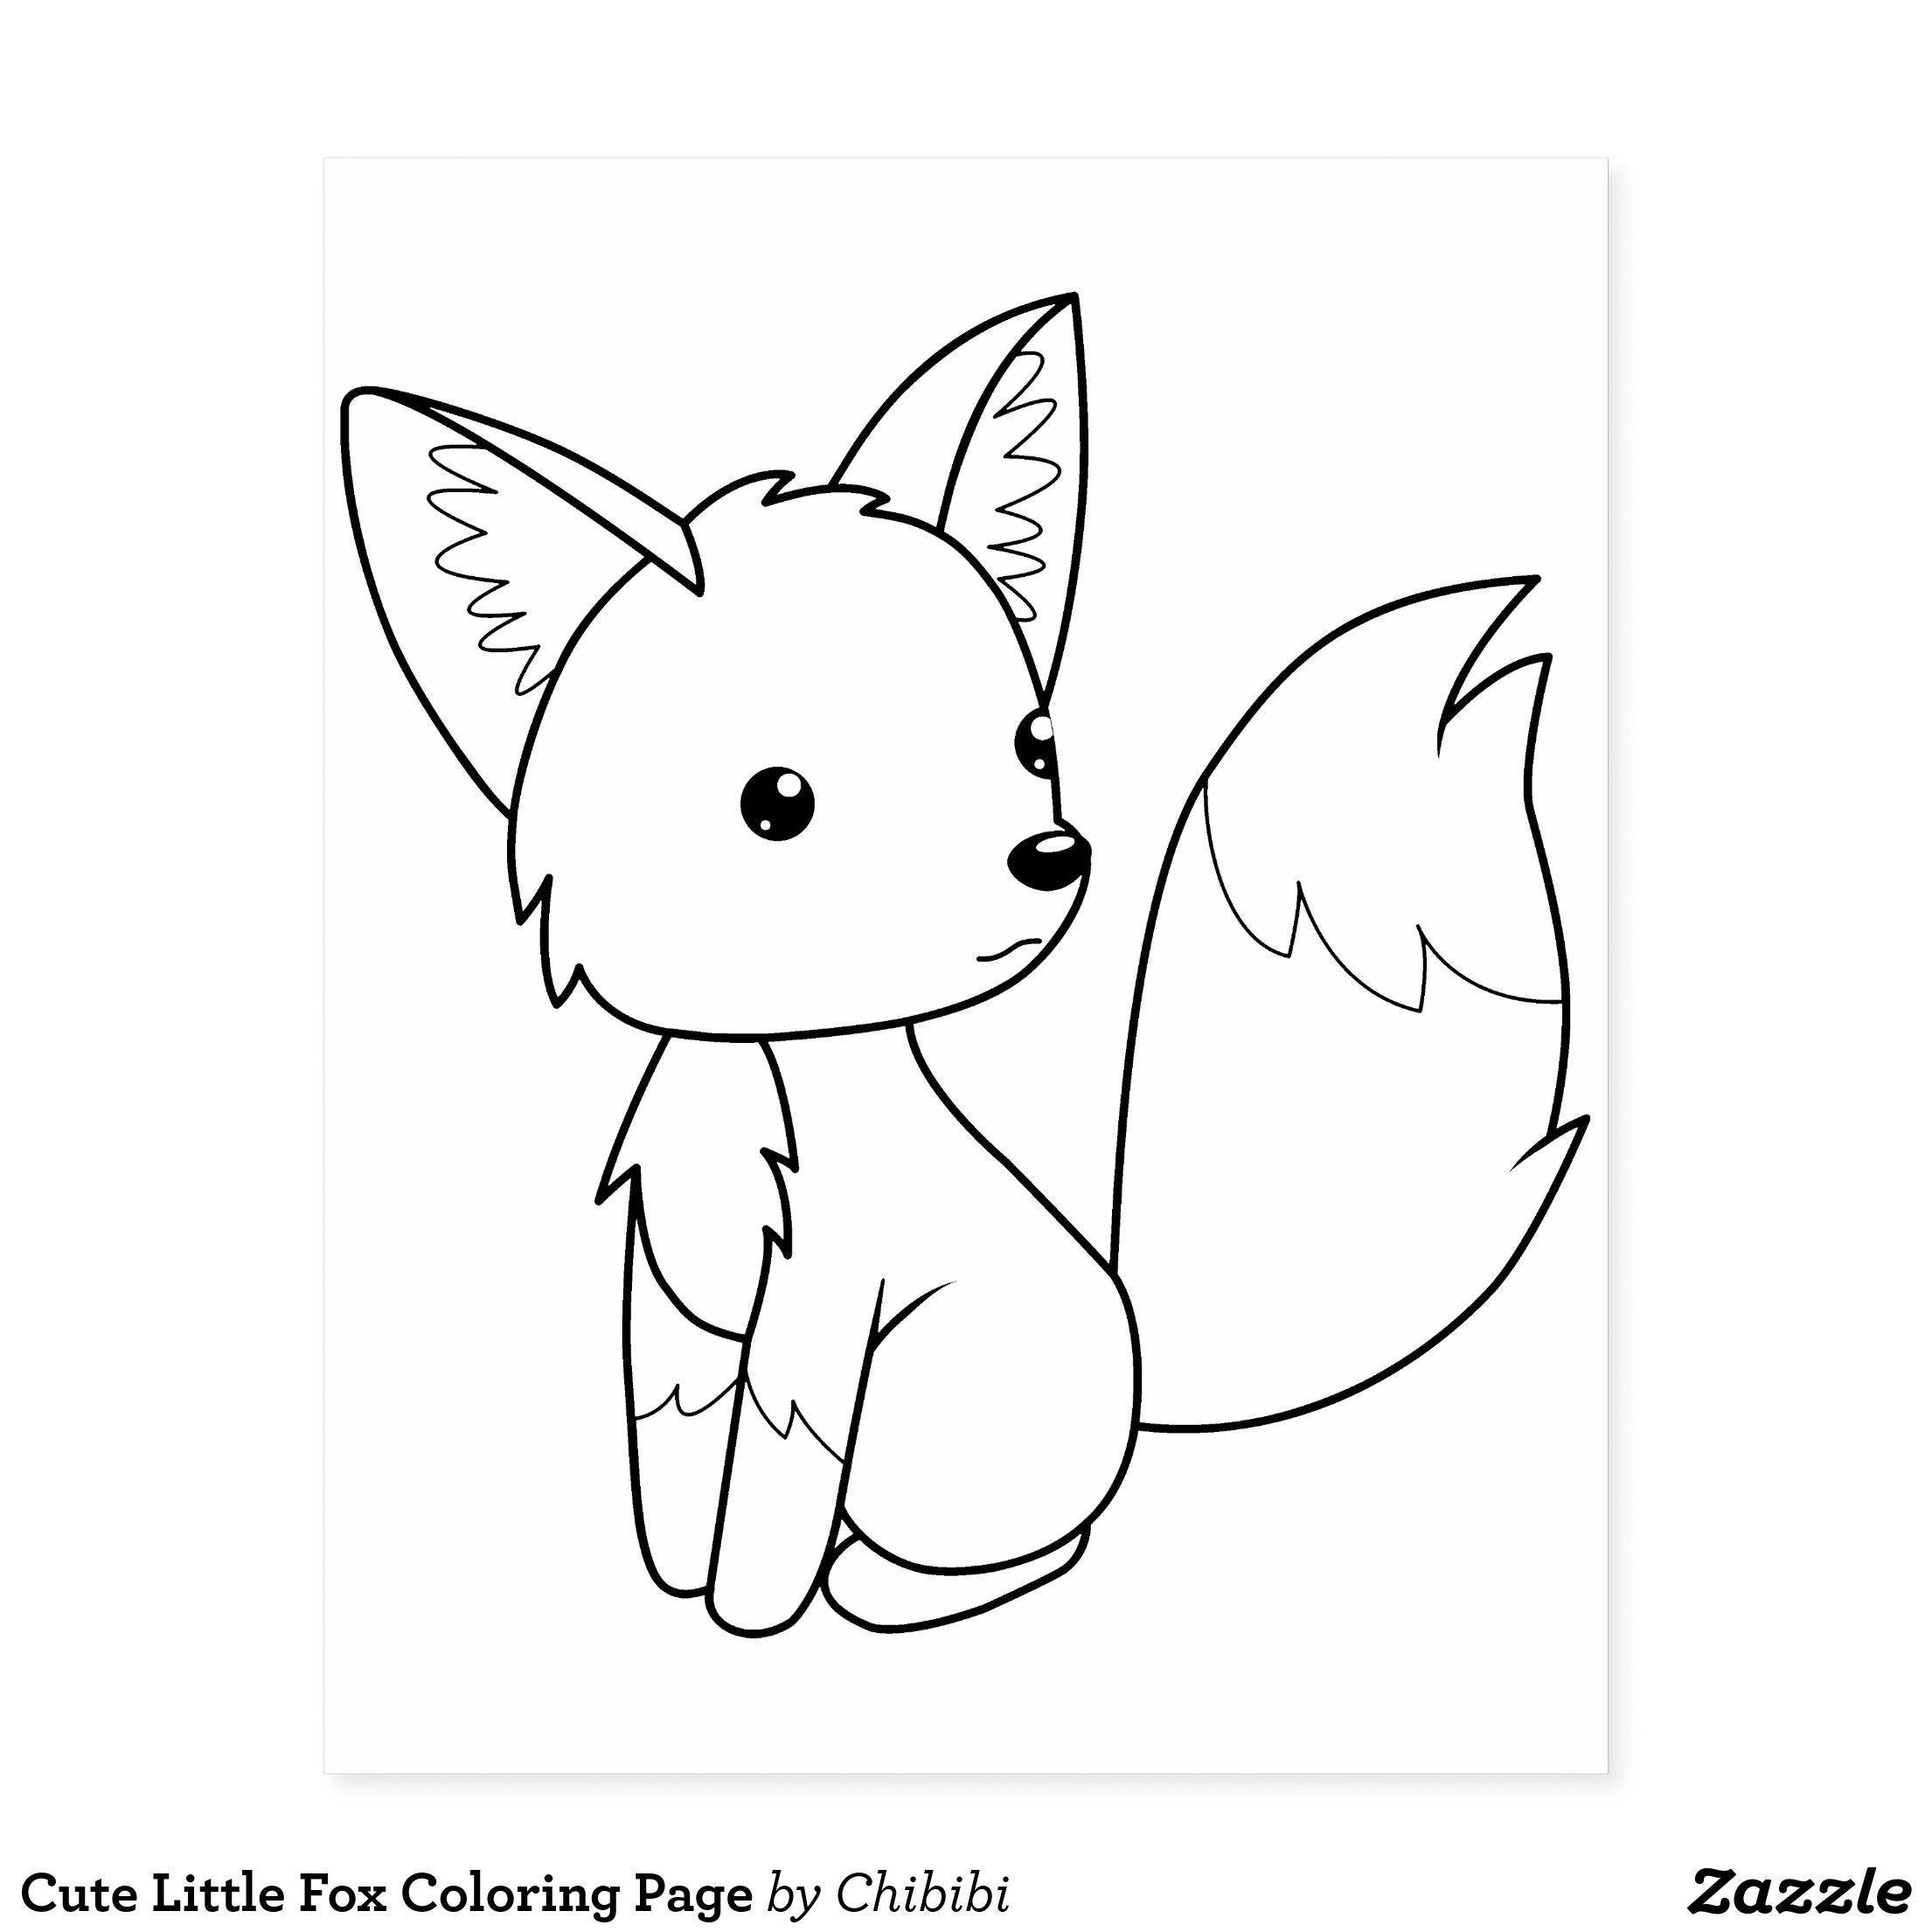 Cute Little Fox Coloring Page Rubber Stamp Zazzle Com Fox Coloring Page Fox Coloring Animal Coloring Pages